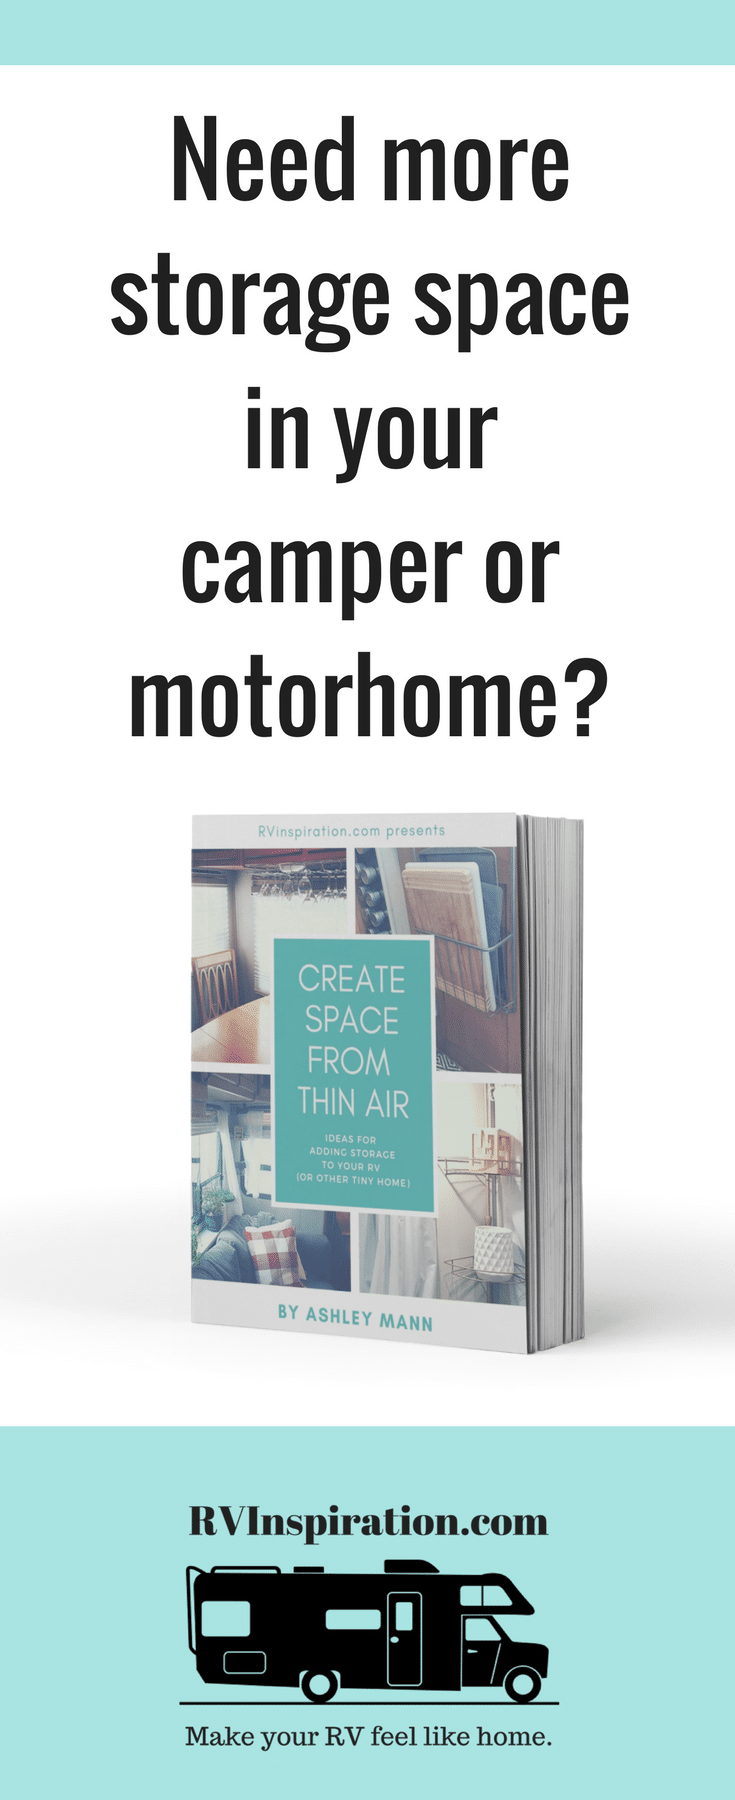 60+ ideas for adding storage to your camper, motorhome, or tiny home. E-book by Ashley Mann, full-time RVer and creator of rvinspiration.com.